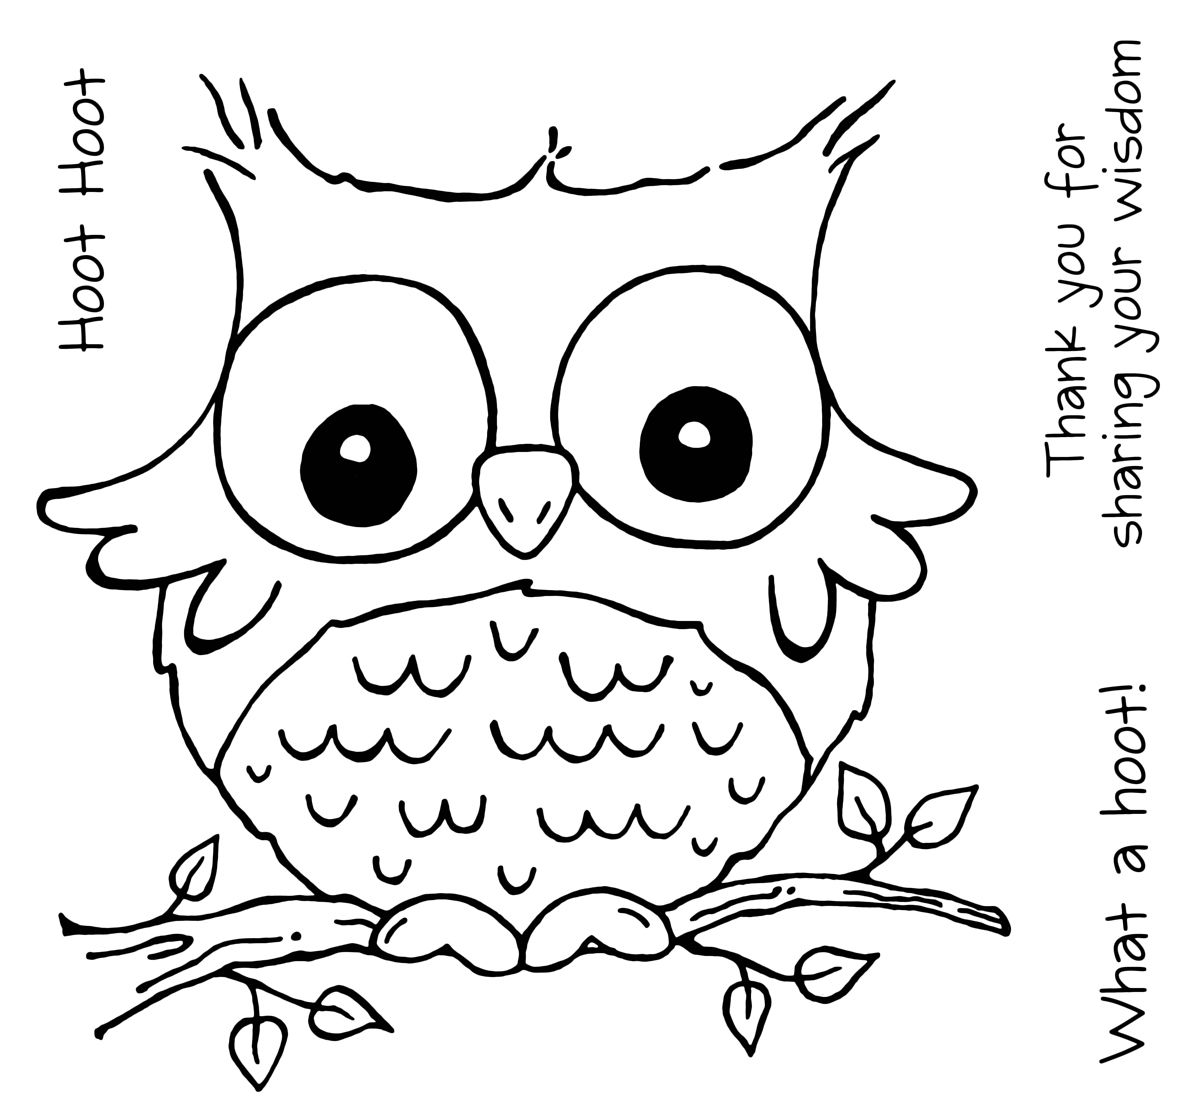 coloring pages cute owl coloring pages to print owl coloring pages printable futpal com cute free